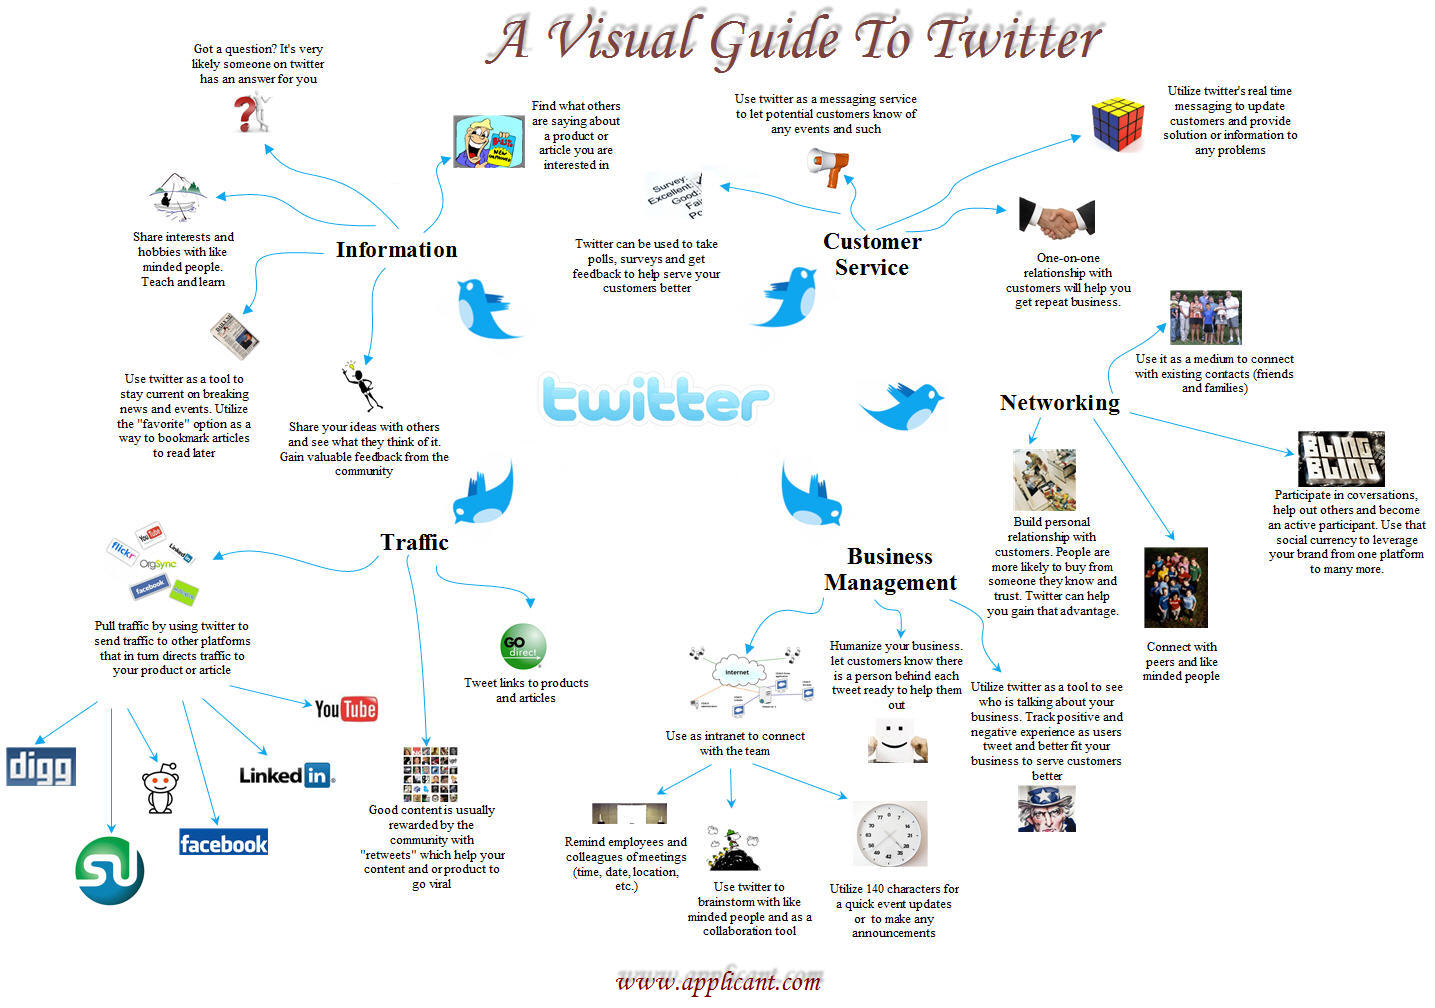 twitter-guide-image-applicant